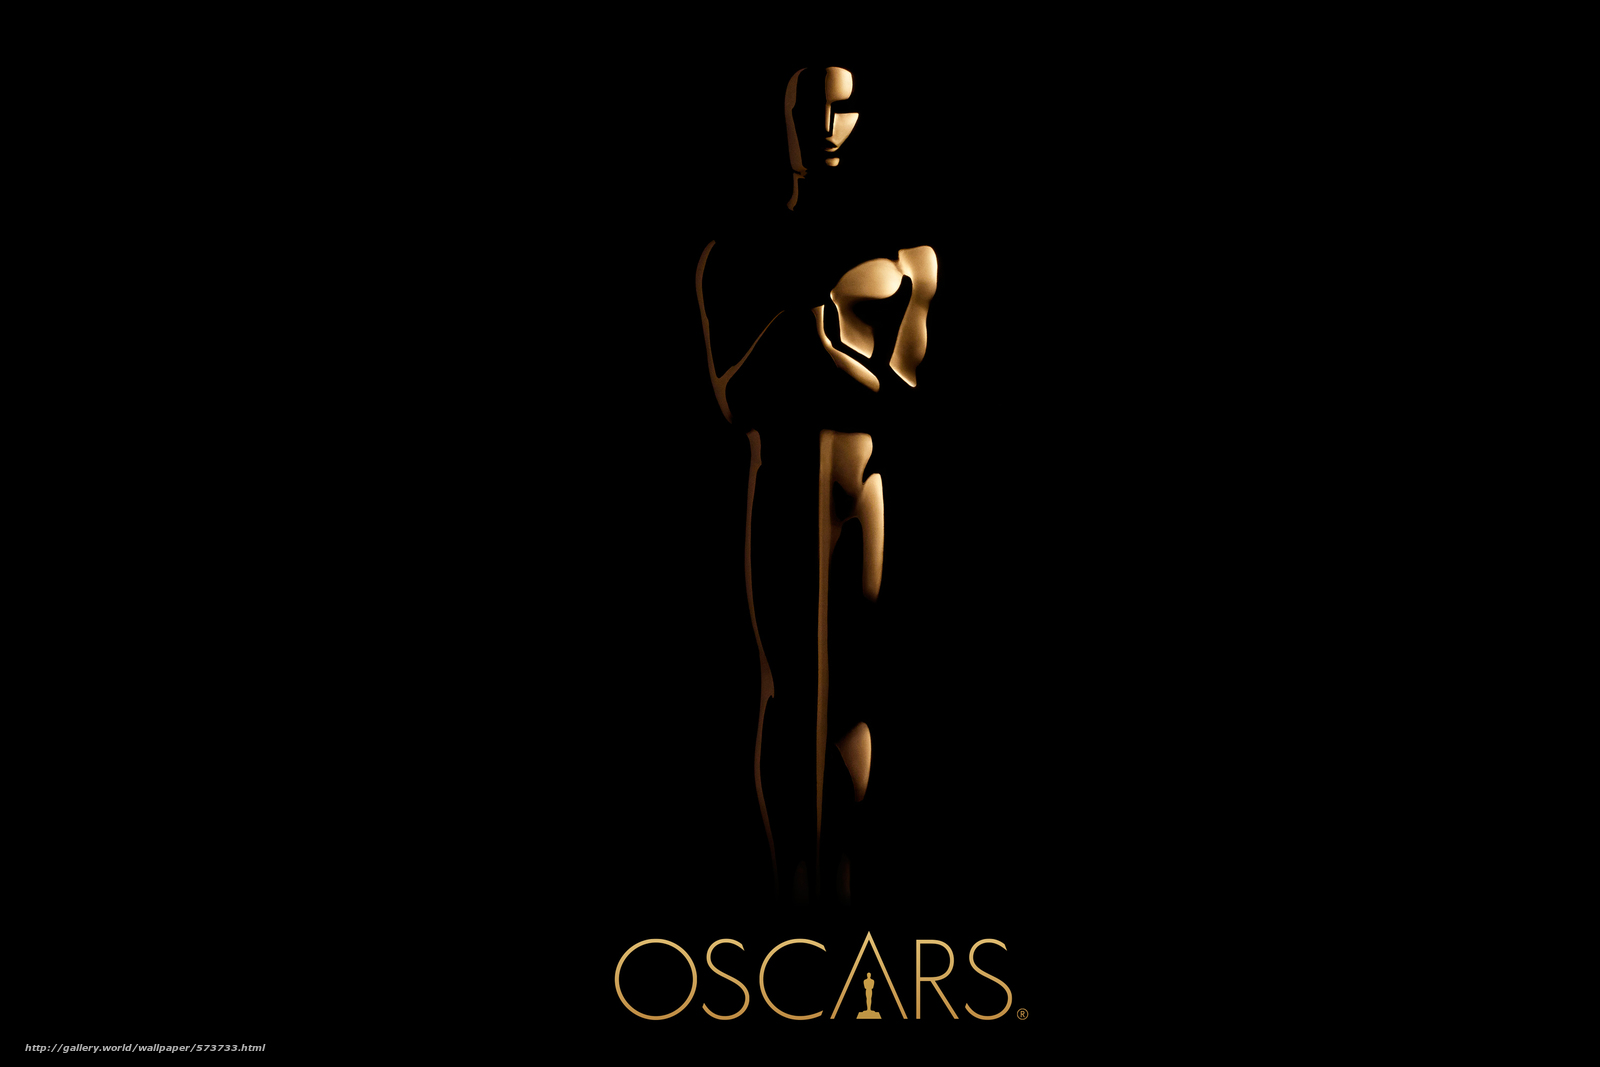 Royalty Free Stock Photos Red Carpet Road To Success Image34800988 together with 18477158 furthermore Hollywood theme party also 3000x2000 in addition Charlize Theron Bra Size Body Measurements. on oscar award background